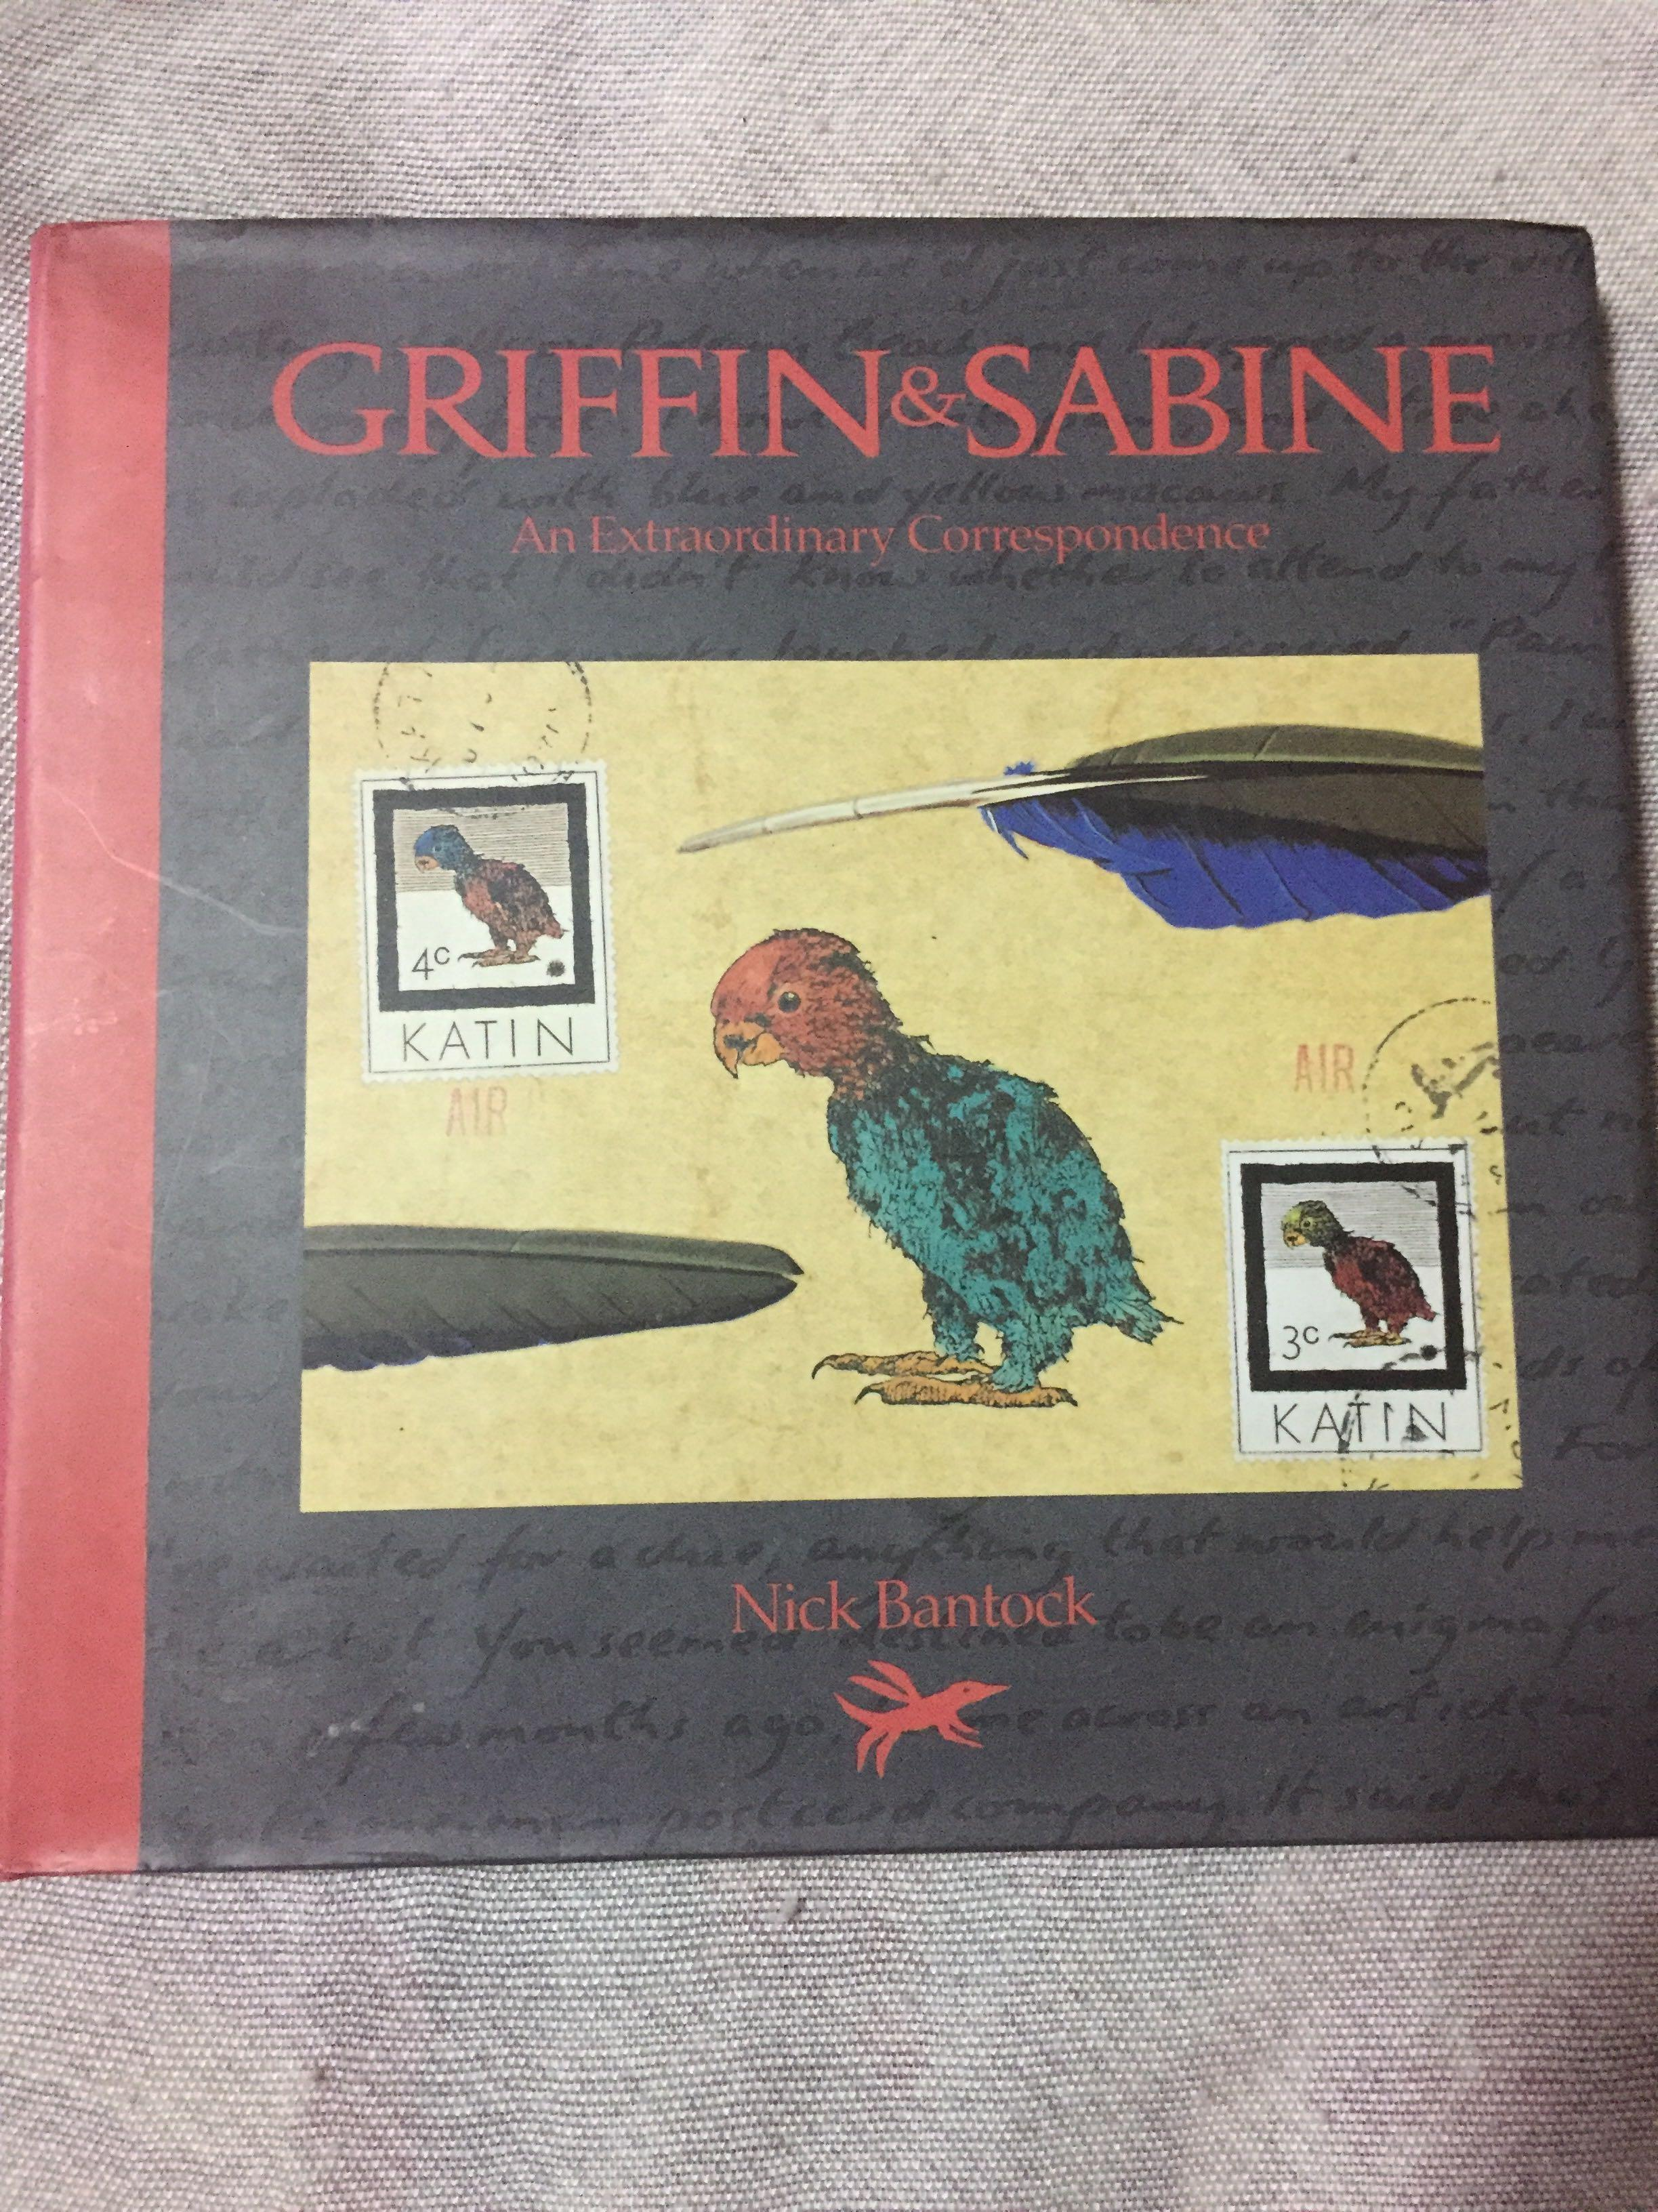 Griffin and Sabine An Extraordinary Correspondence by Nick Bantock